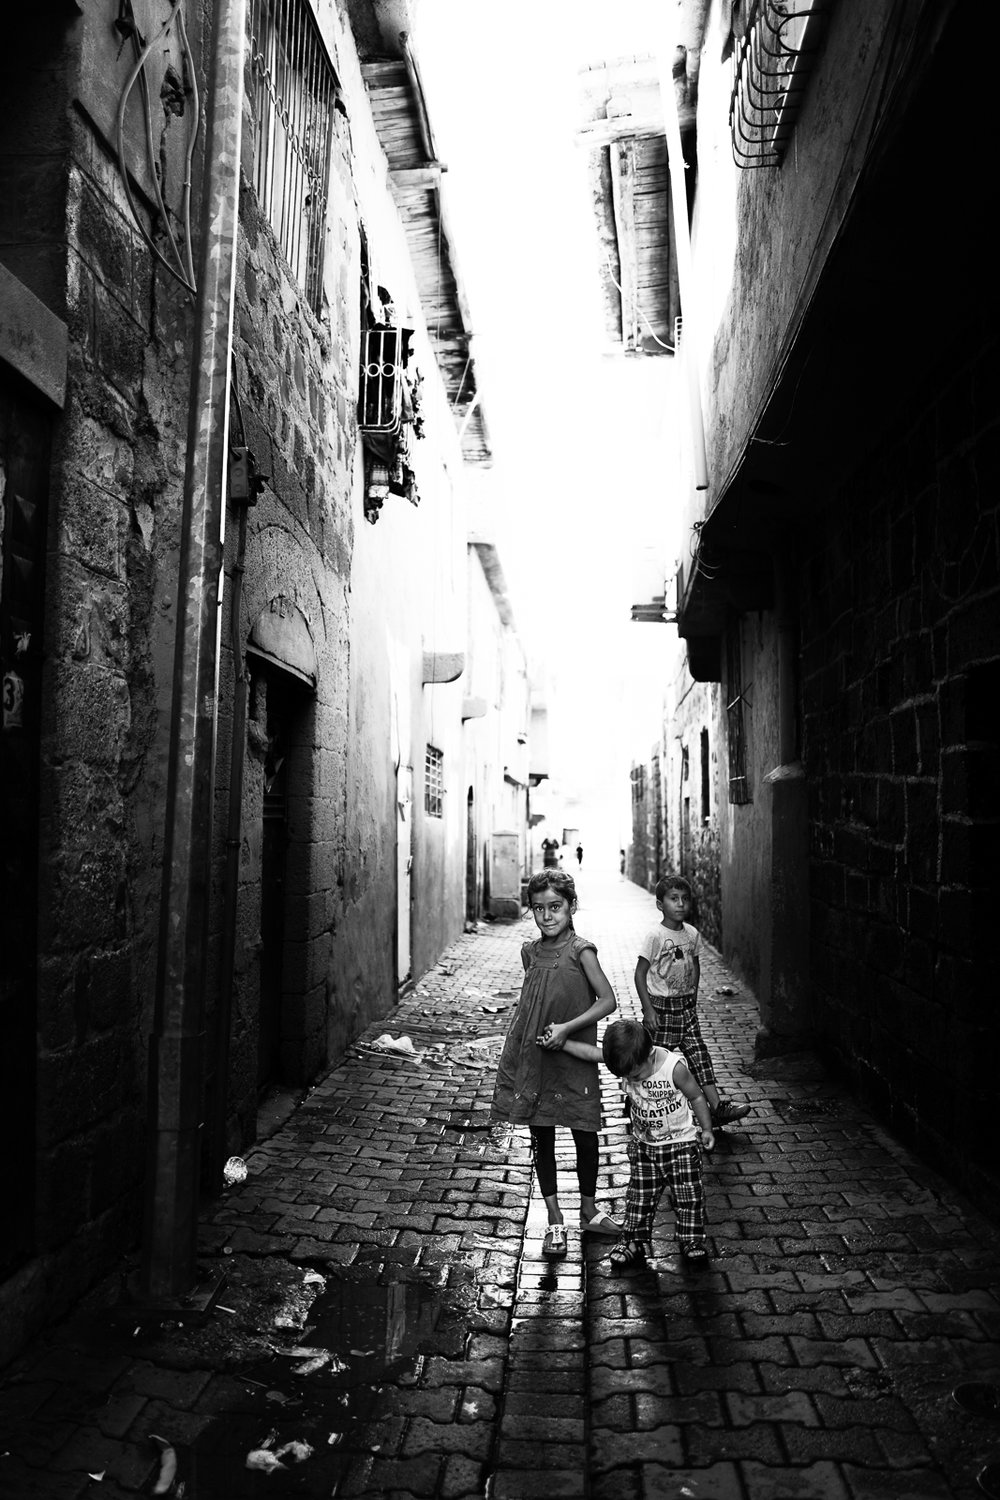 Children are playing in the Diyarbakir (Turkey) old city.